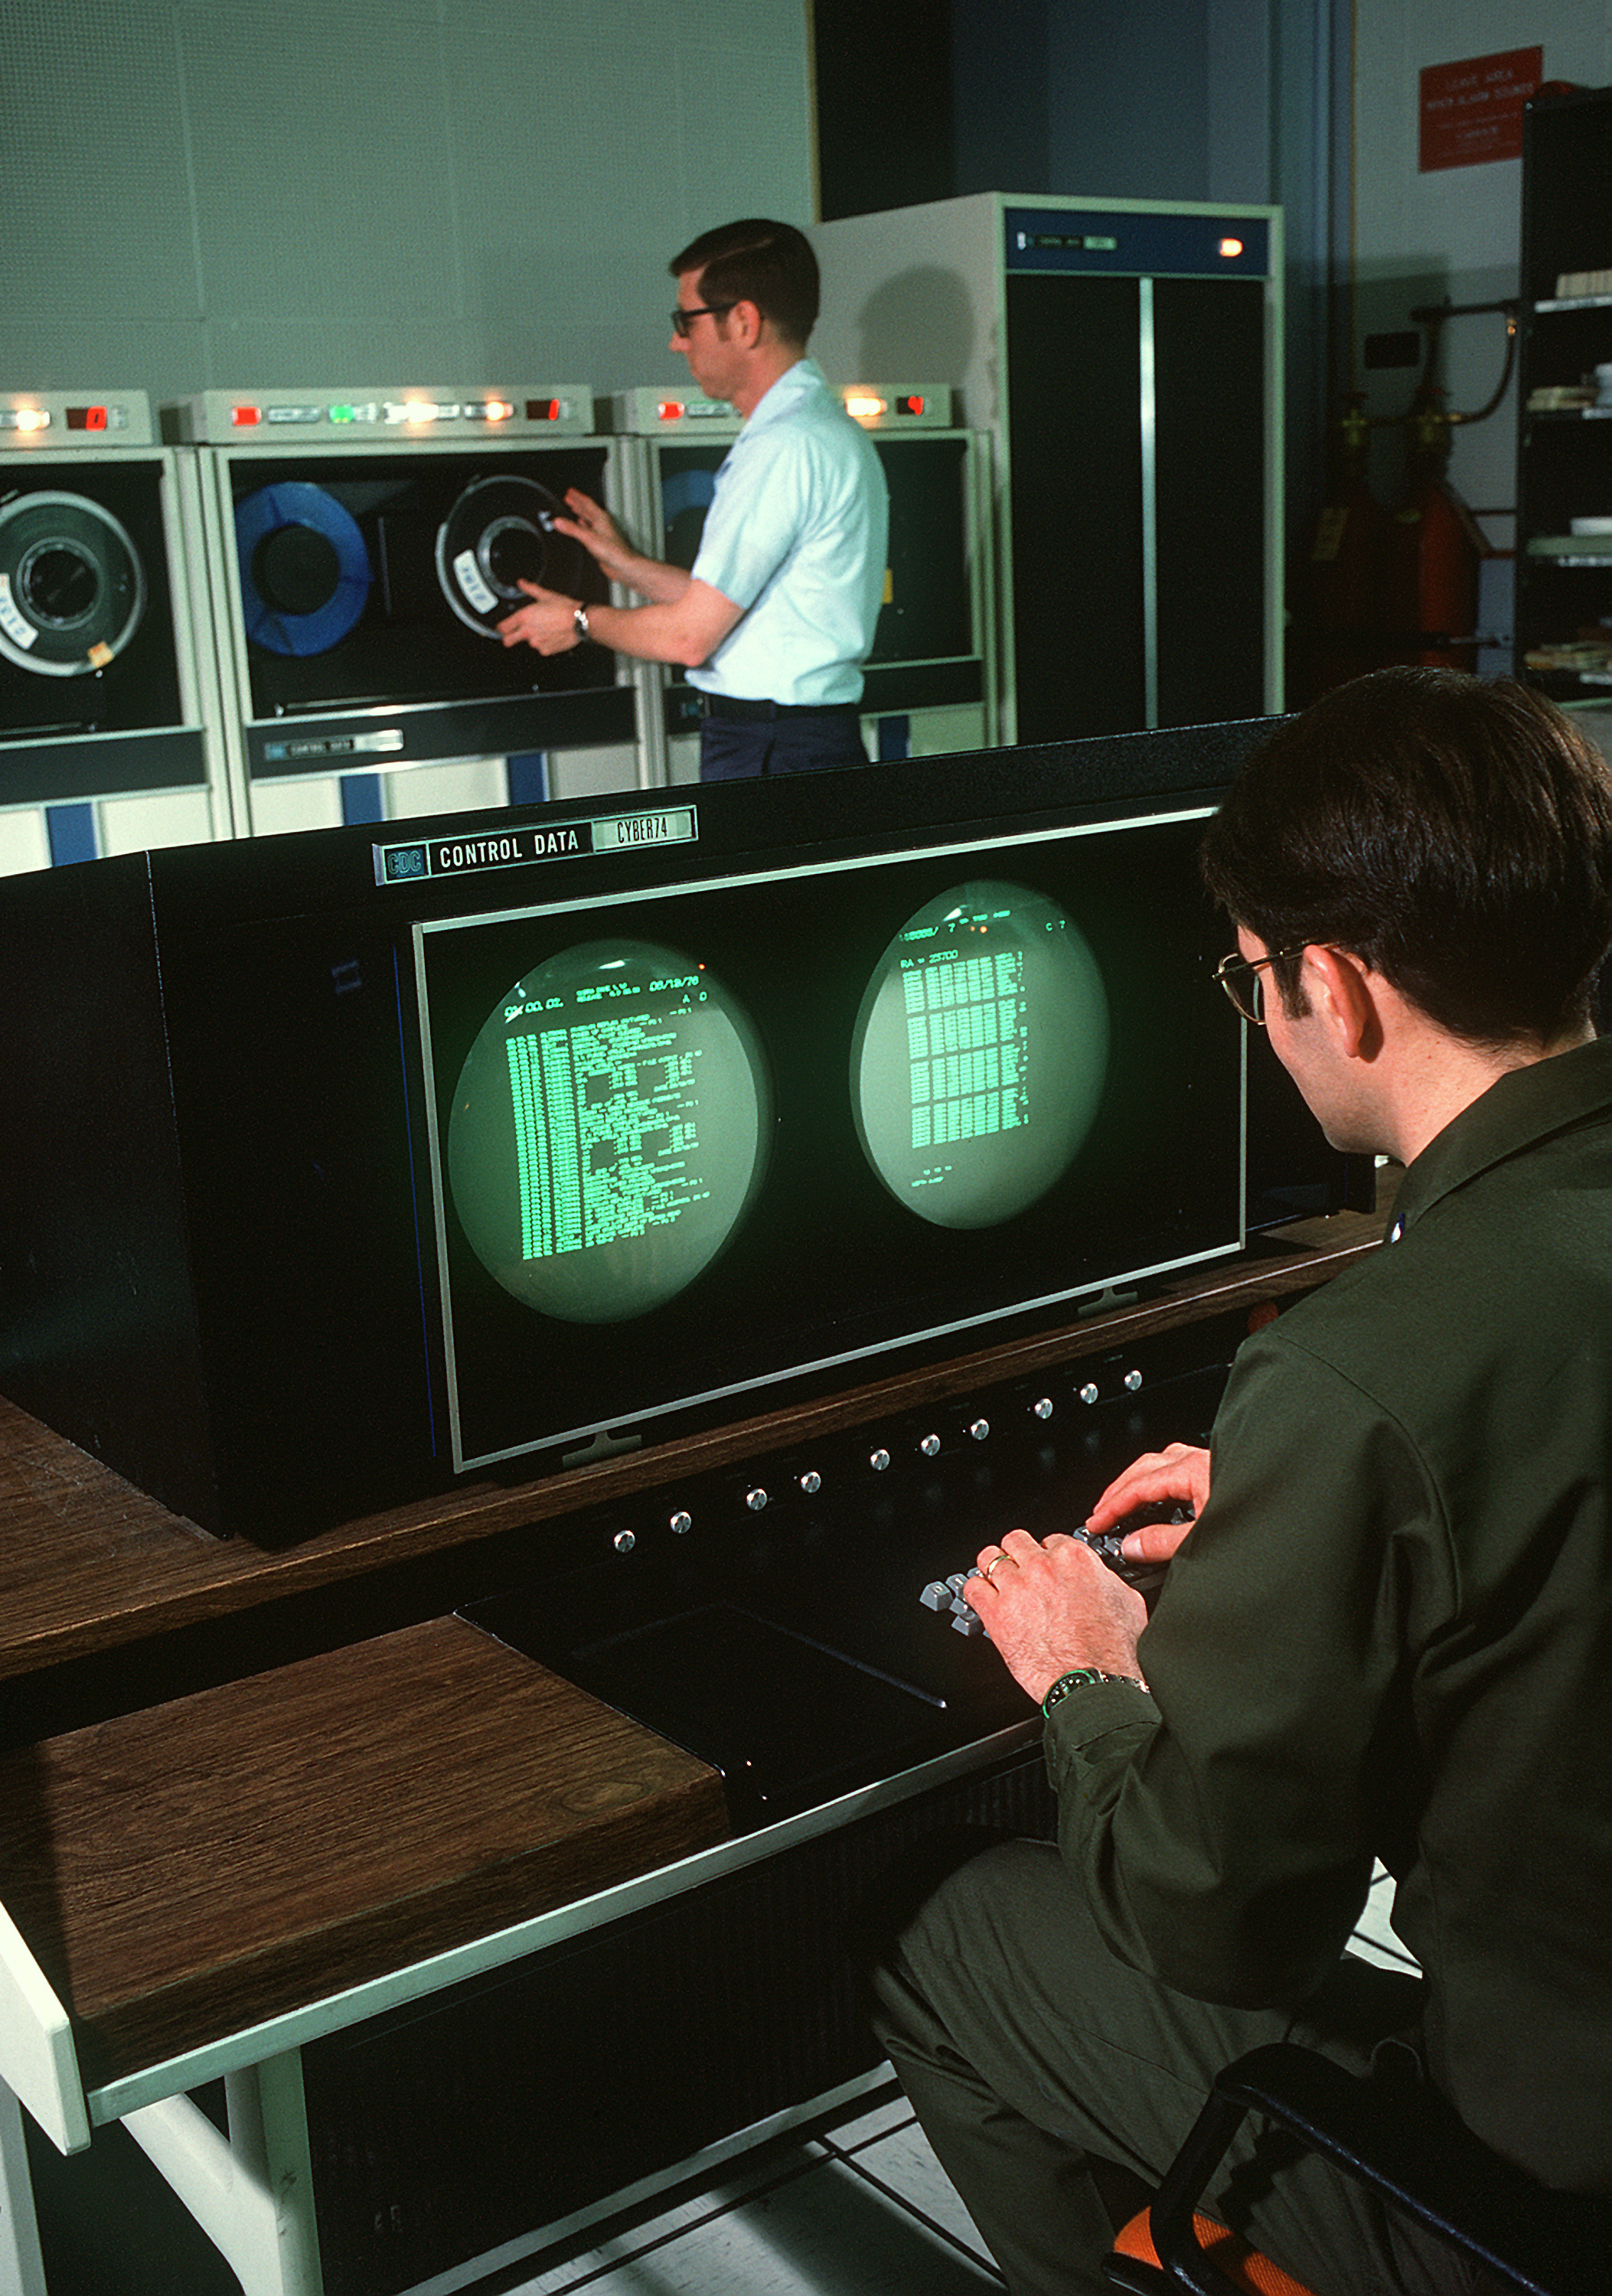 Personnel inside the data processing center for COBRA DANE, an